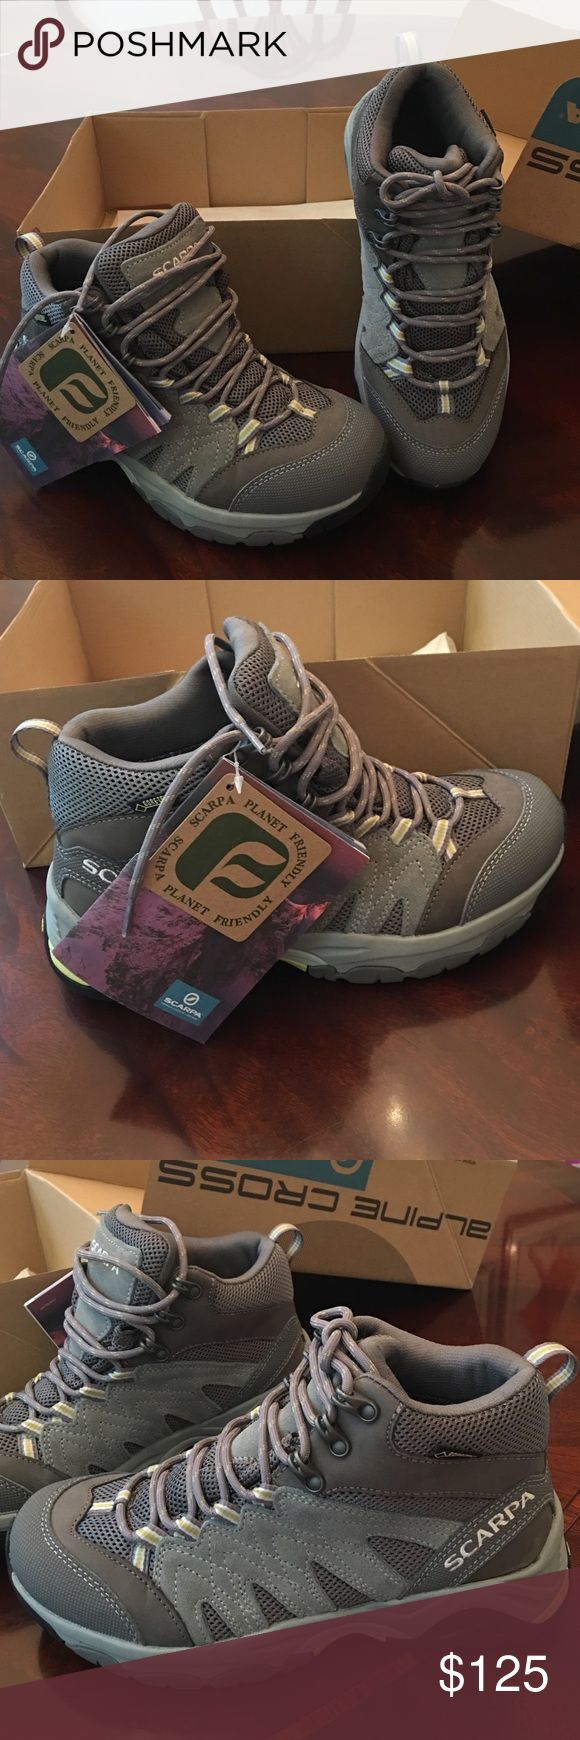 Scarpa NIB lady's hiking boots Brand new boots from Italian brand Scarpa. I accidentally ordered the wrong size. My looks is your gain!  GORE-TEX keeps your feet 100% dry on those rainy hikes. Suede & man-made outers. Smoke-free home. No trades or holds. Scarpa Shoes Lace Up Boots